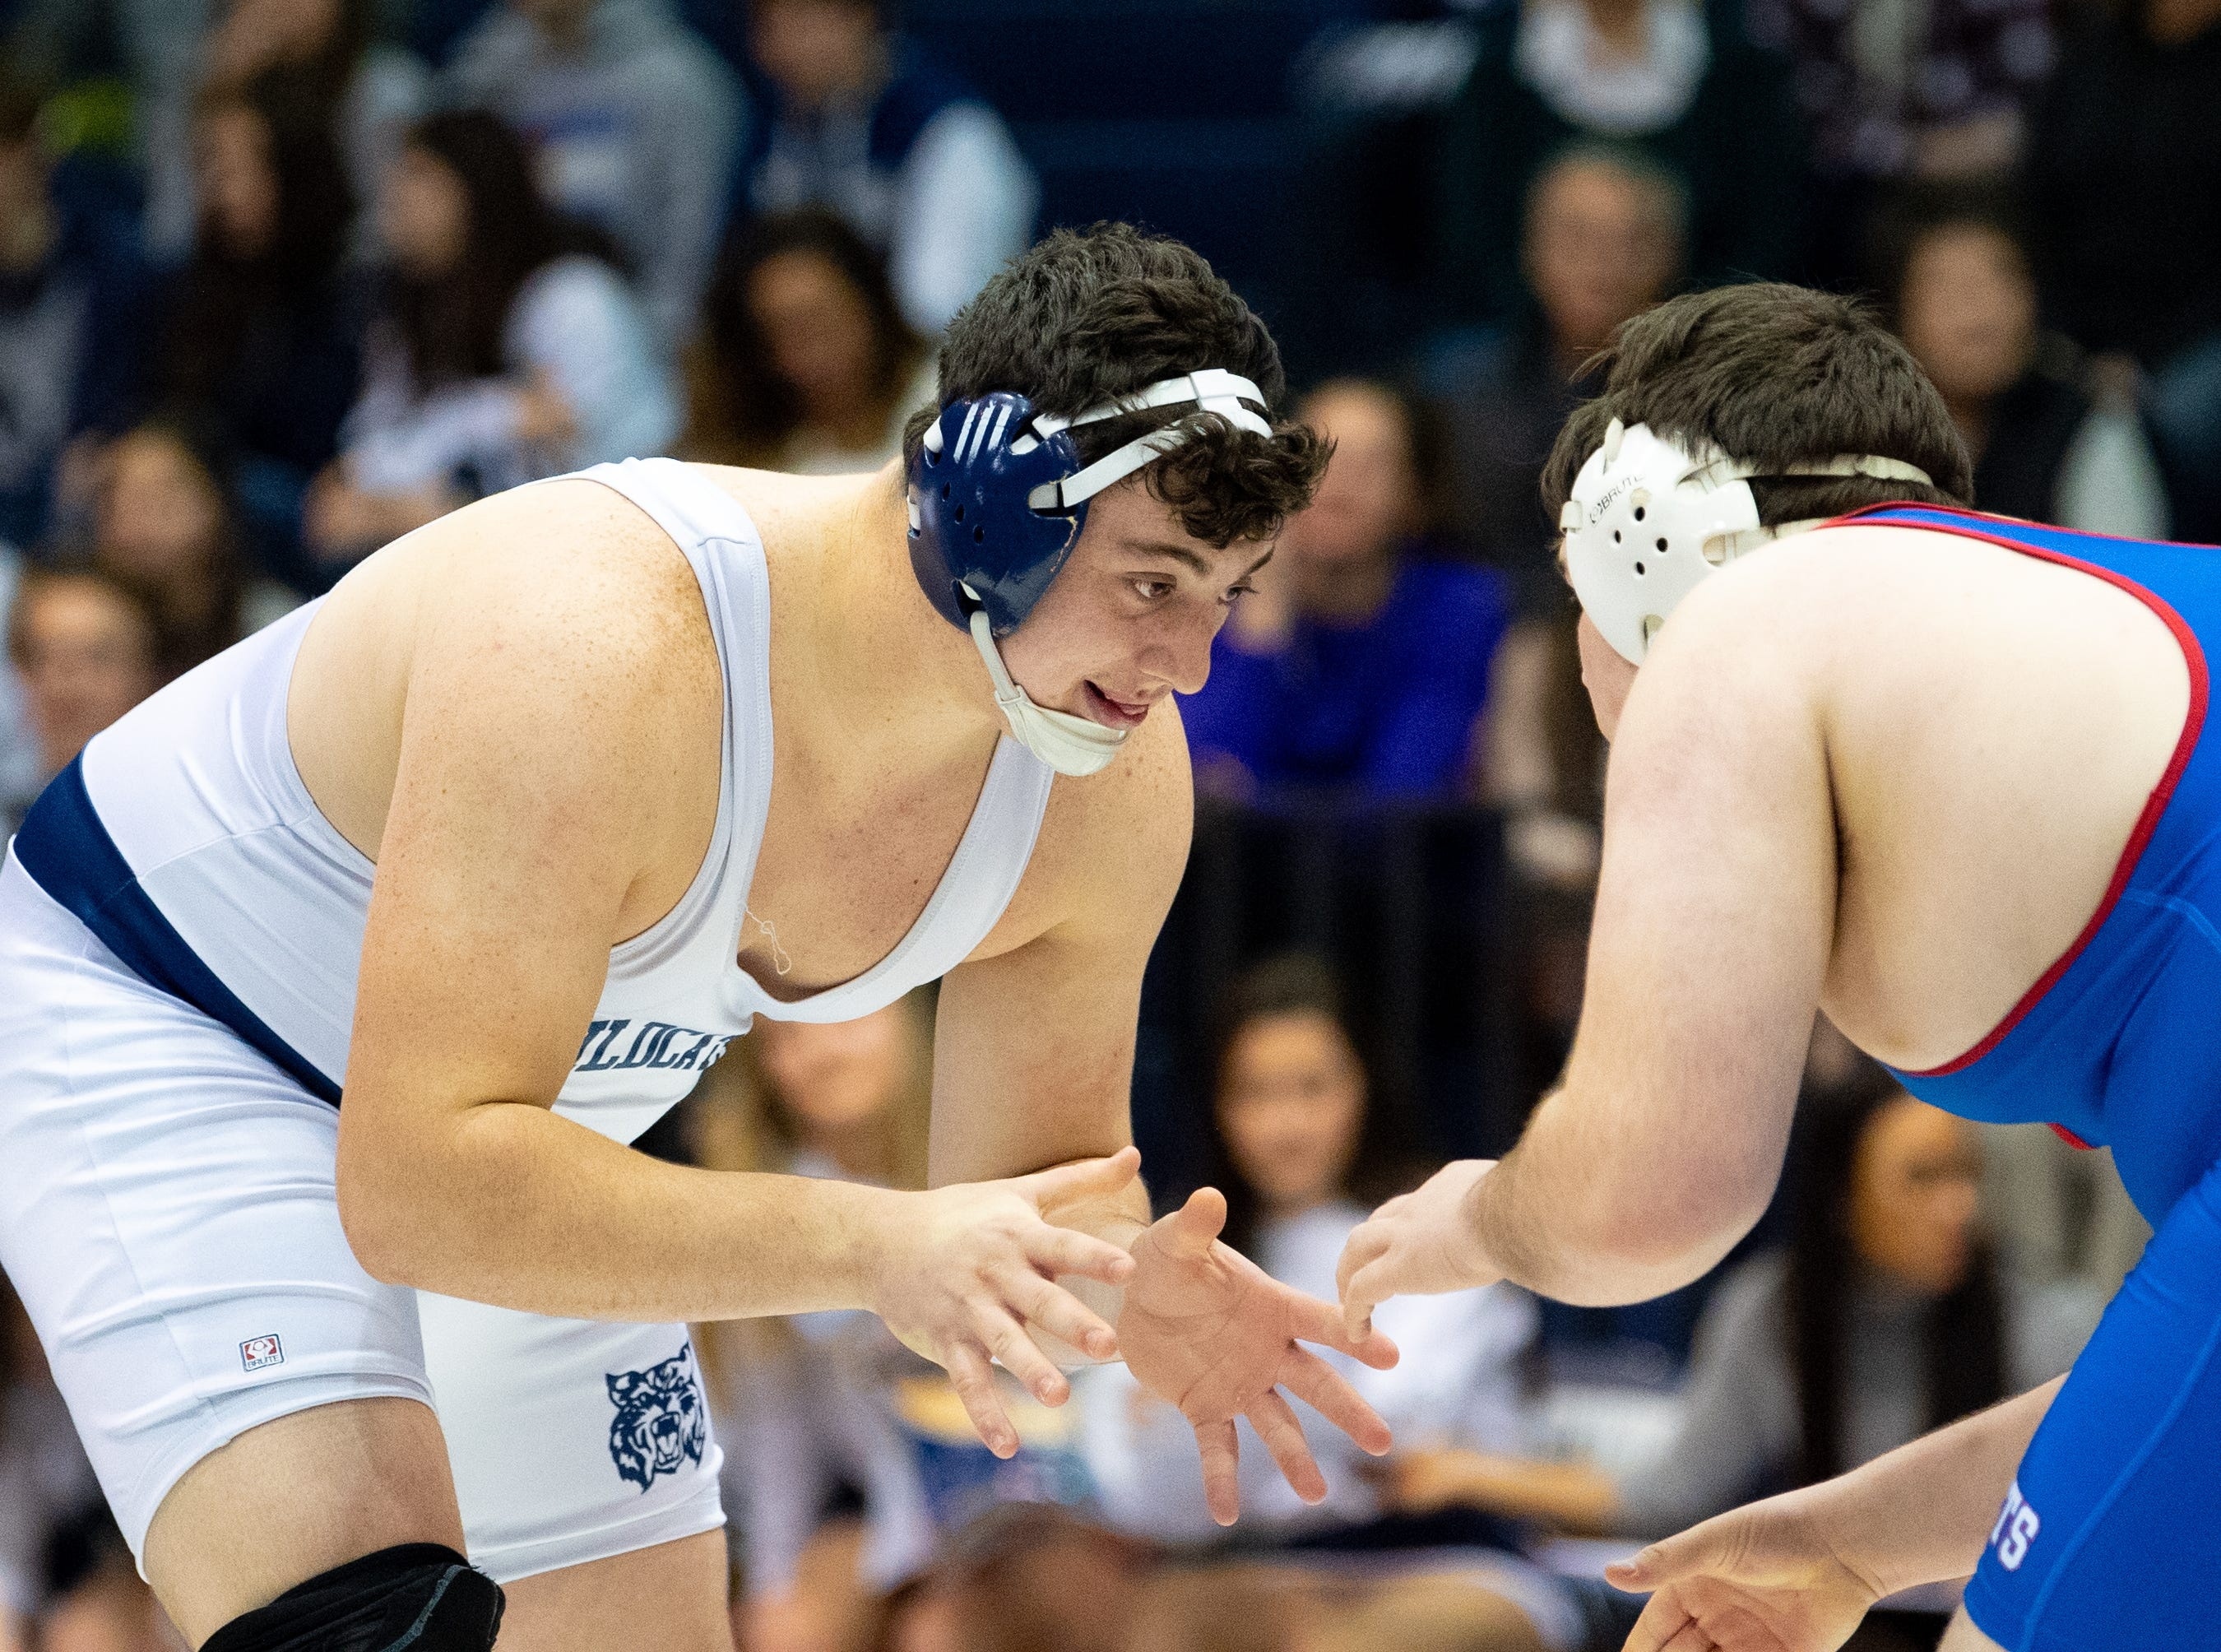 Raymond Christas of Dallastown looks for an opening during the wrestling dual meet between Dallastown and Spring Grove, January 17, 2019. The Wildcats defeated the Rockets 46-24.